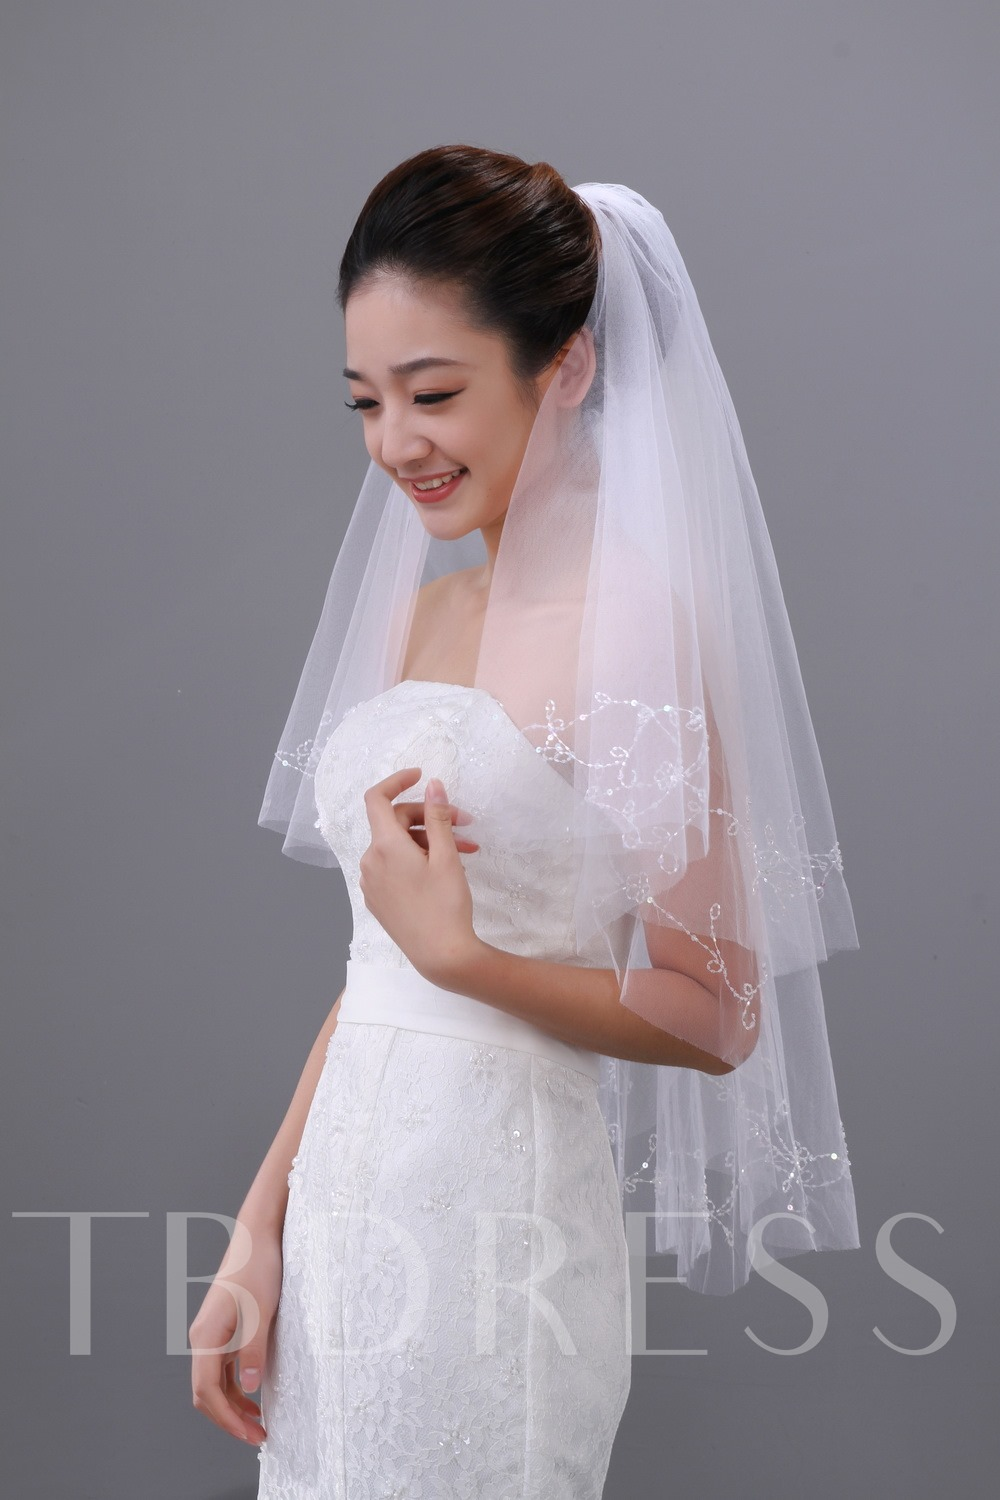 Fingertip Length Beading Wedding Veil